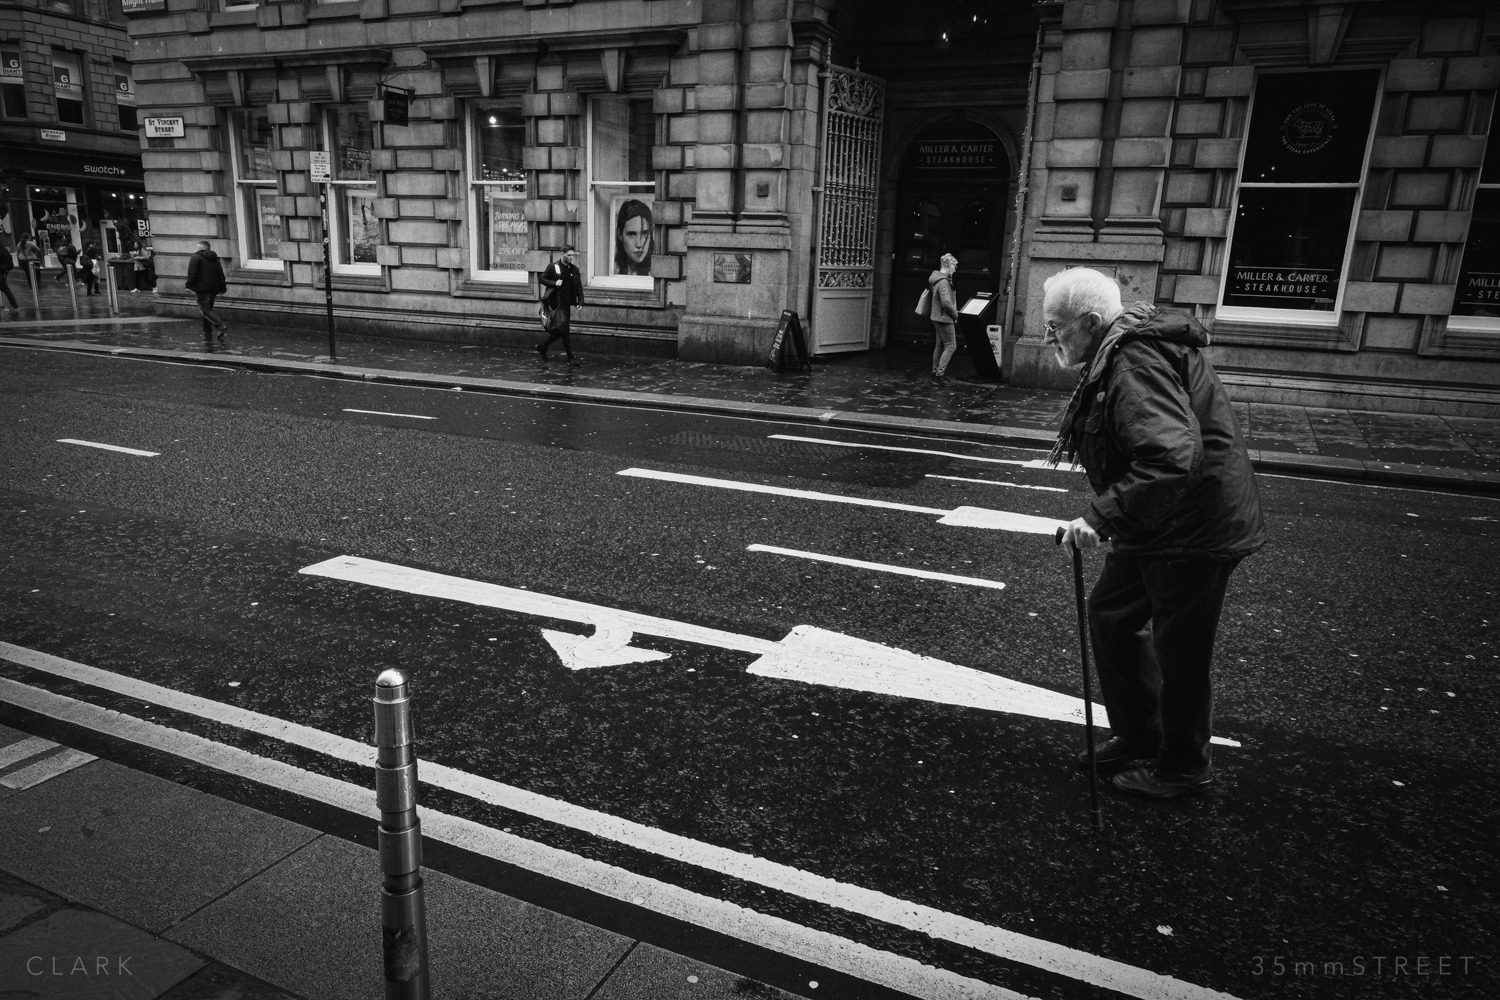 022_35mmStreet-Rainy-Friday-Glasgow.jpg